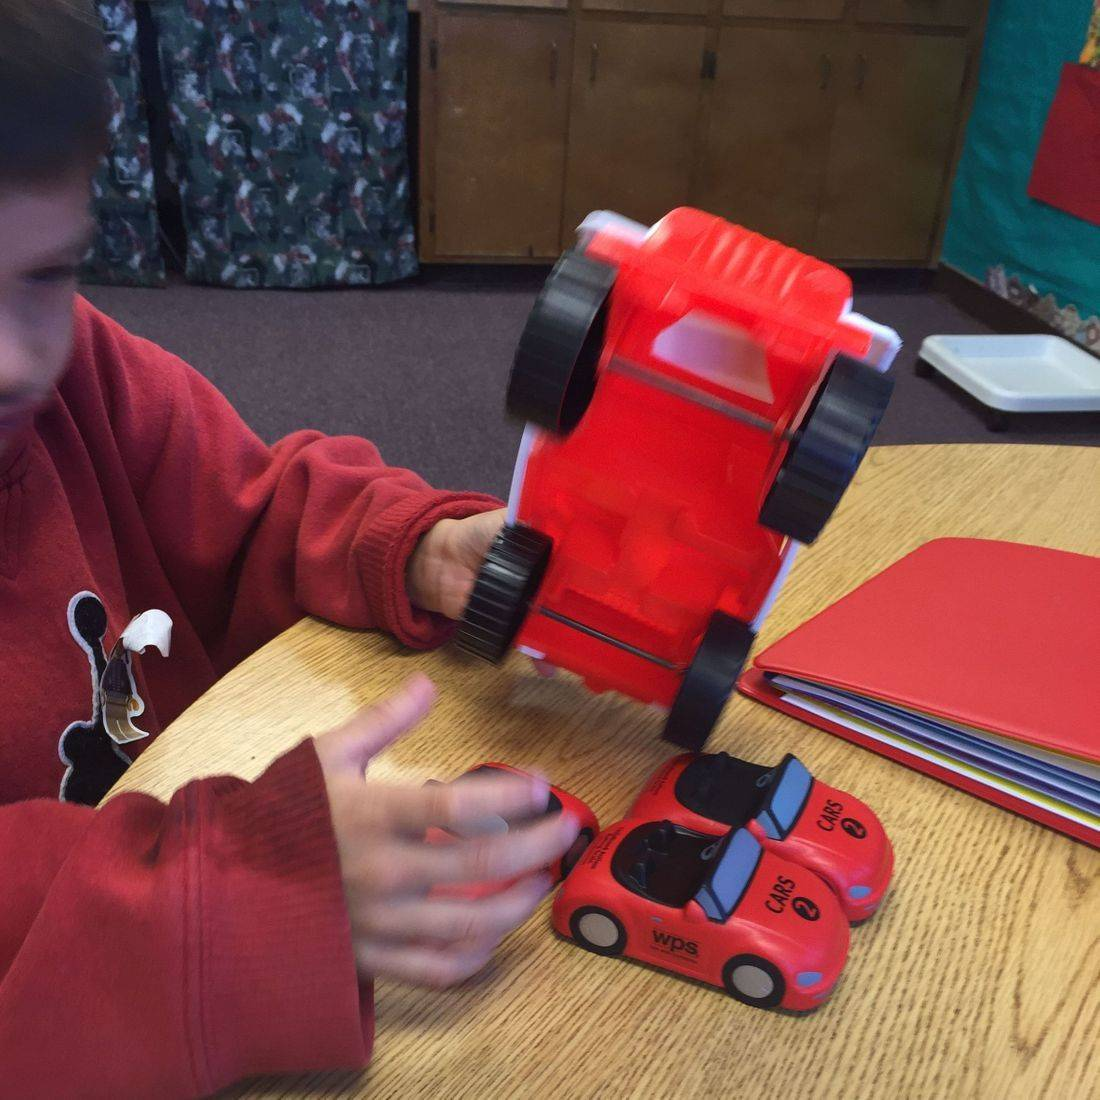 Very young blind student is learning the concept of car by exploring a variety of toy cars. He is holding one in his hand exploring the wheels and axels. He has three more cars on a table in front of him.